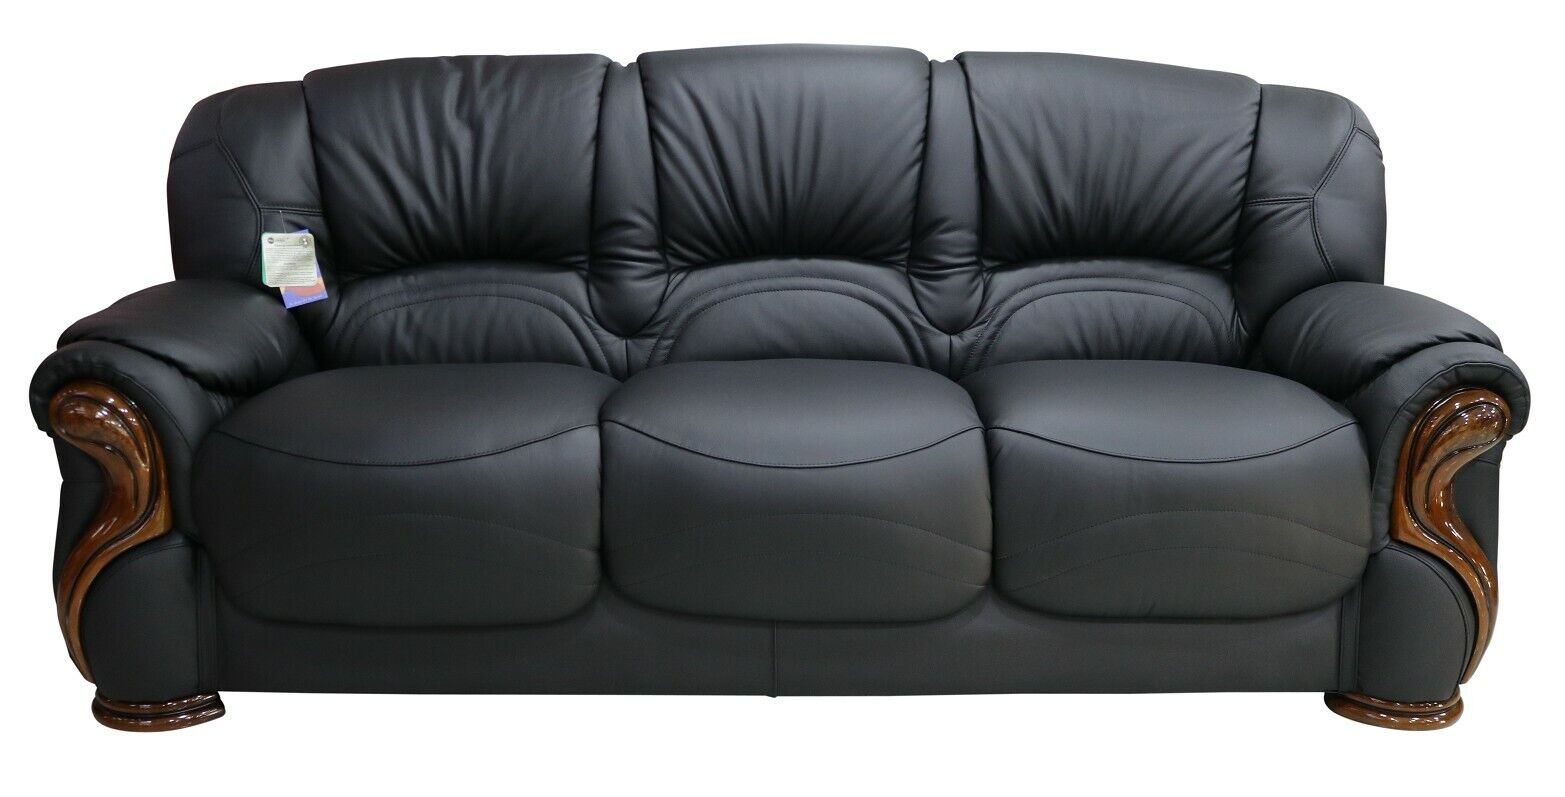 Details about Susanna 3 Seater Italian Black Leather Sofa Settee Couch  Contemporary